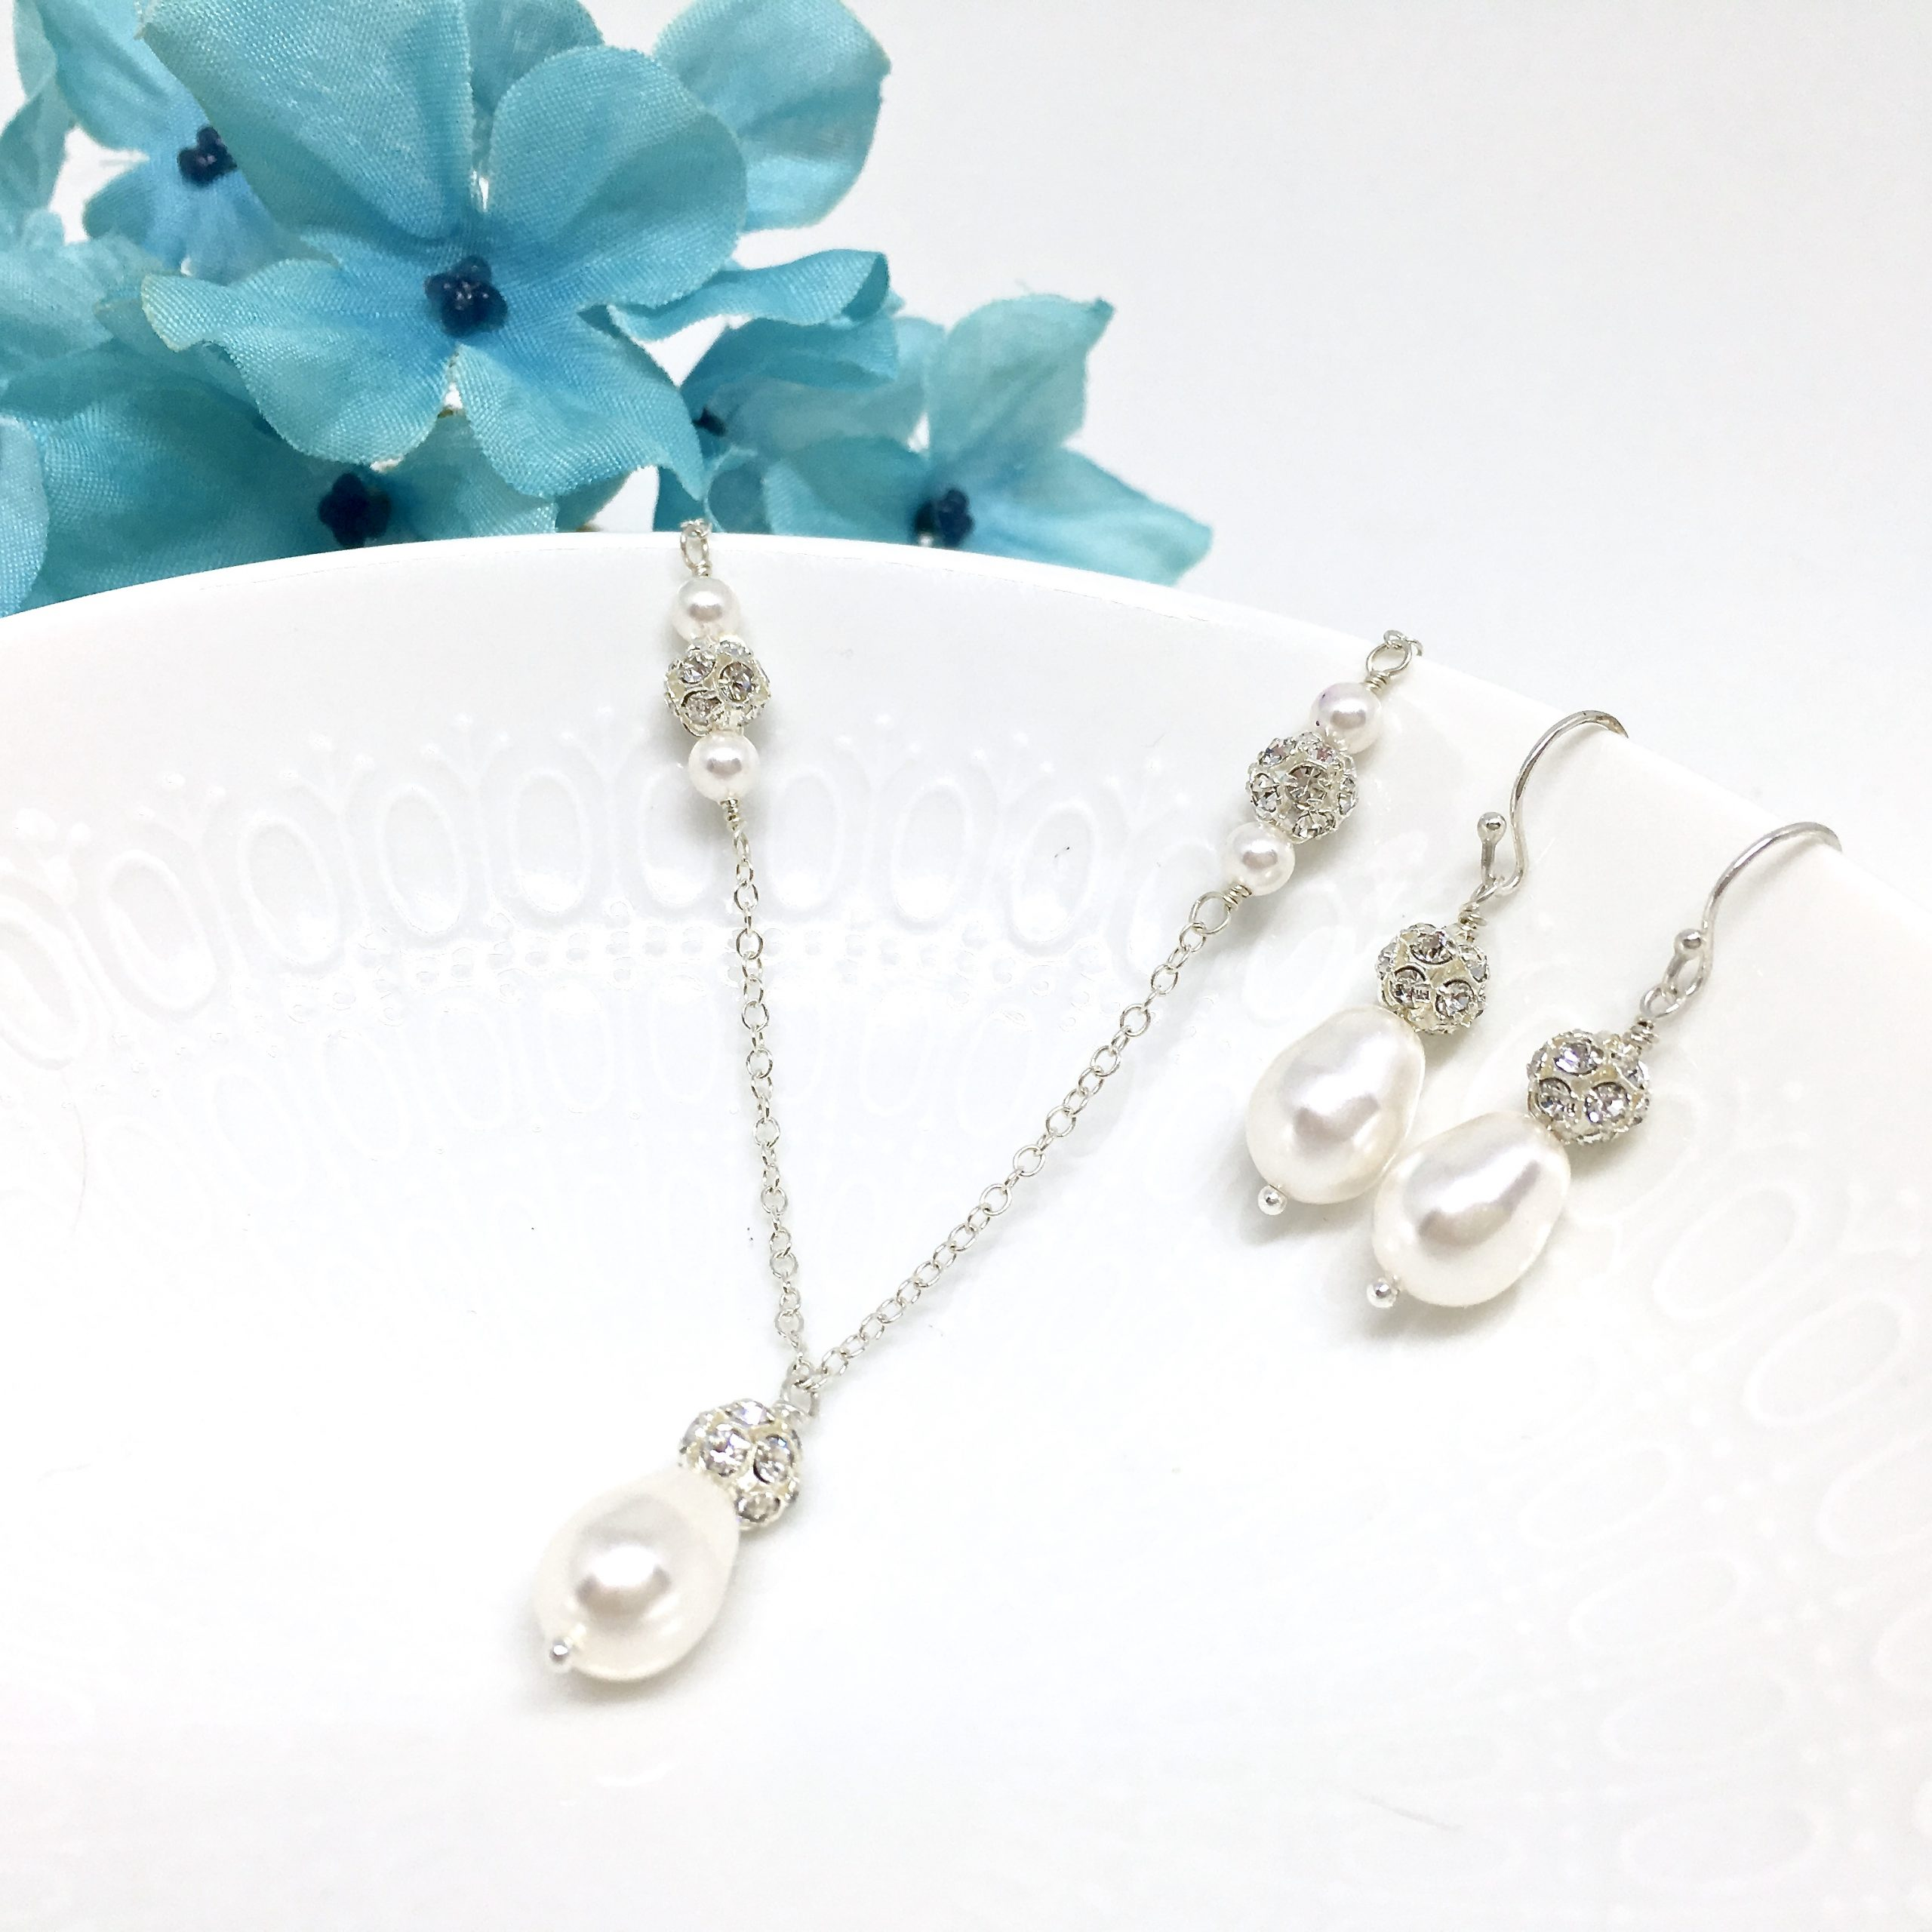 Teardrop Pearl Necklace With Backdropp